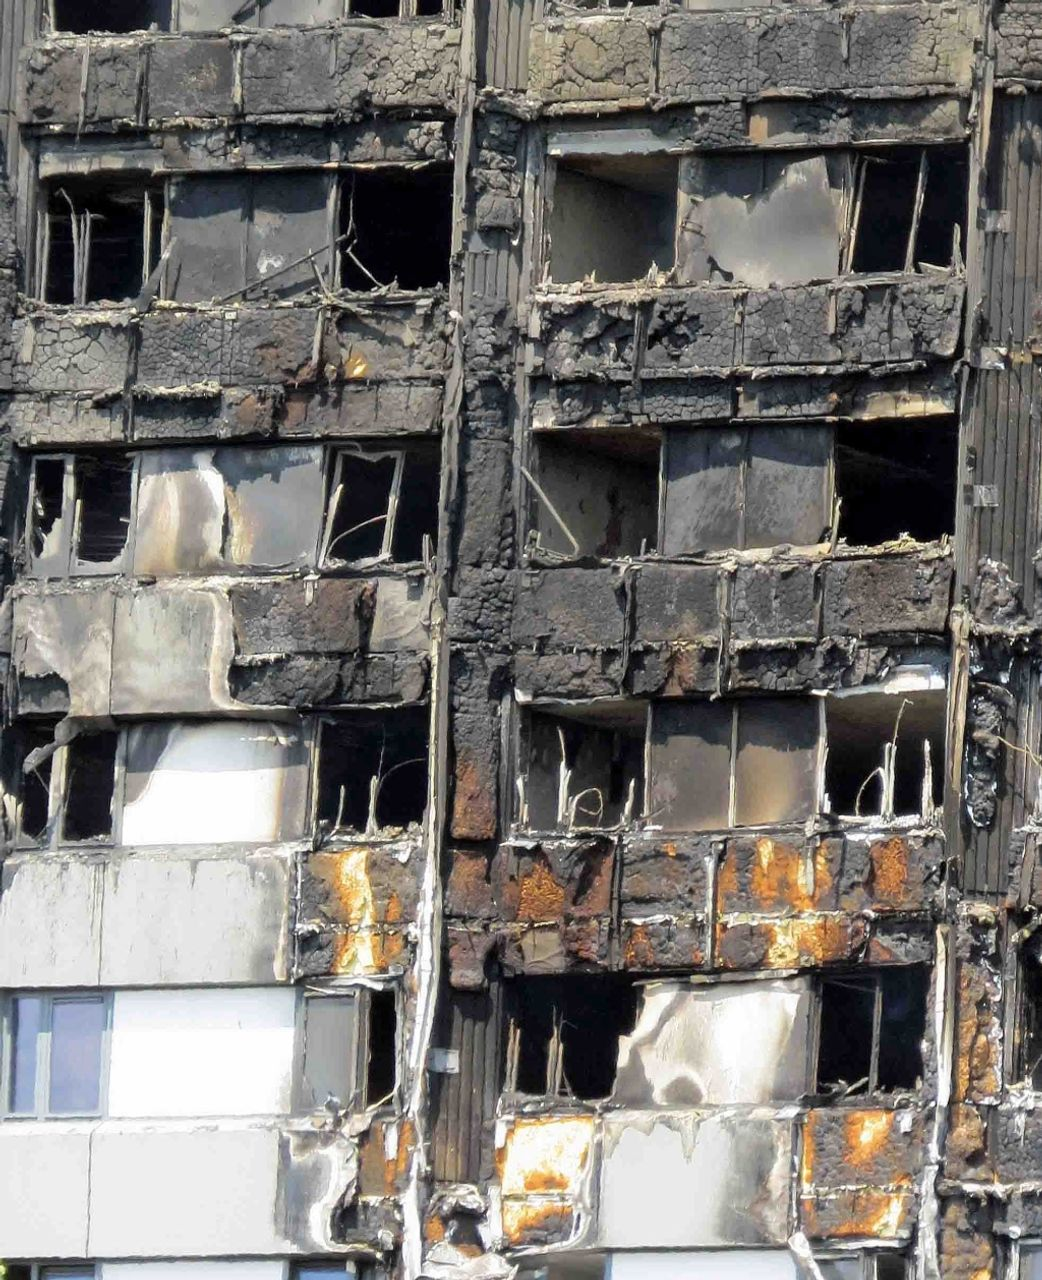 Photo showing the remains of the burnt away Grenfell Tower foam and aluminium cladding